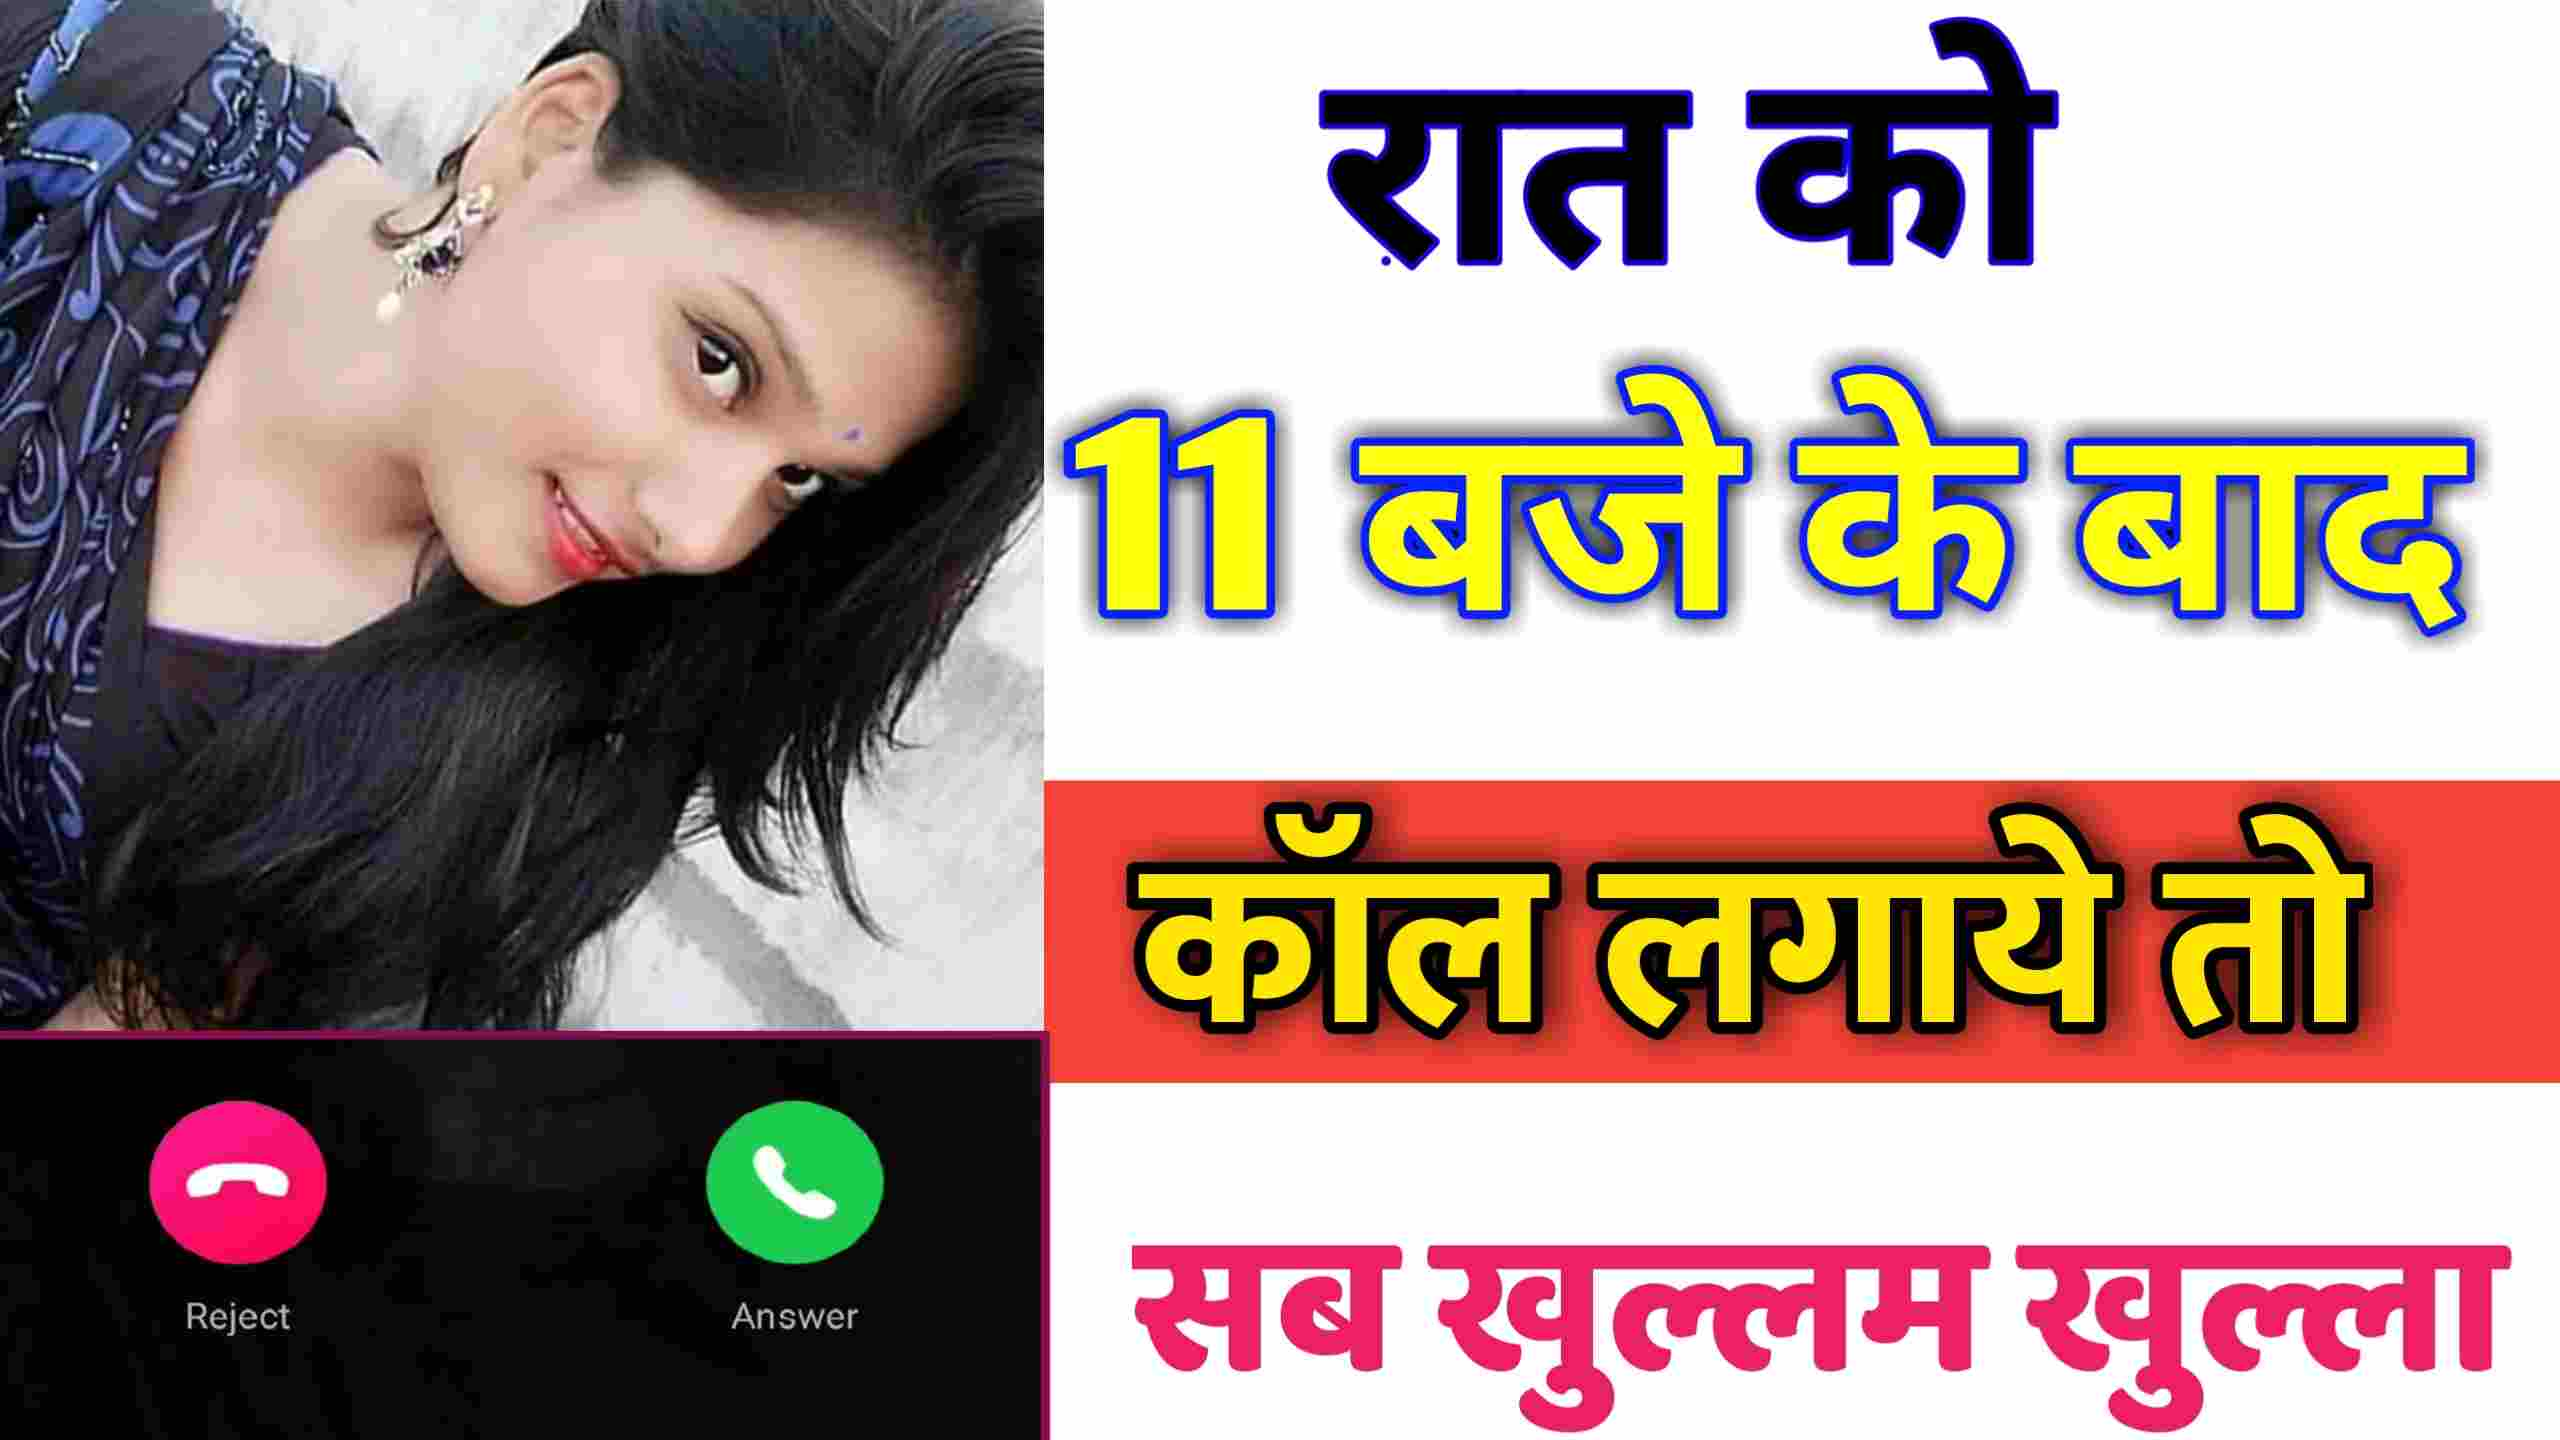 Video chat Room And Meet New People